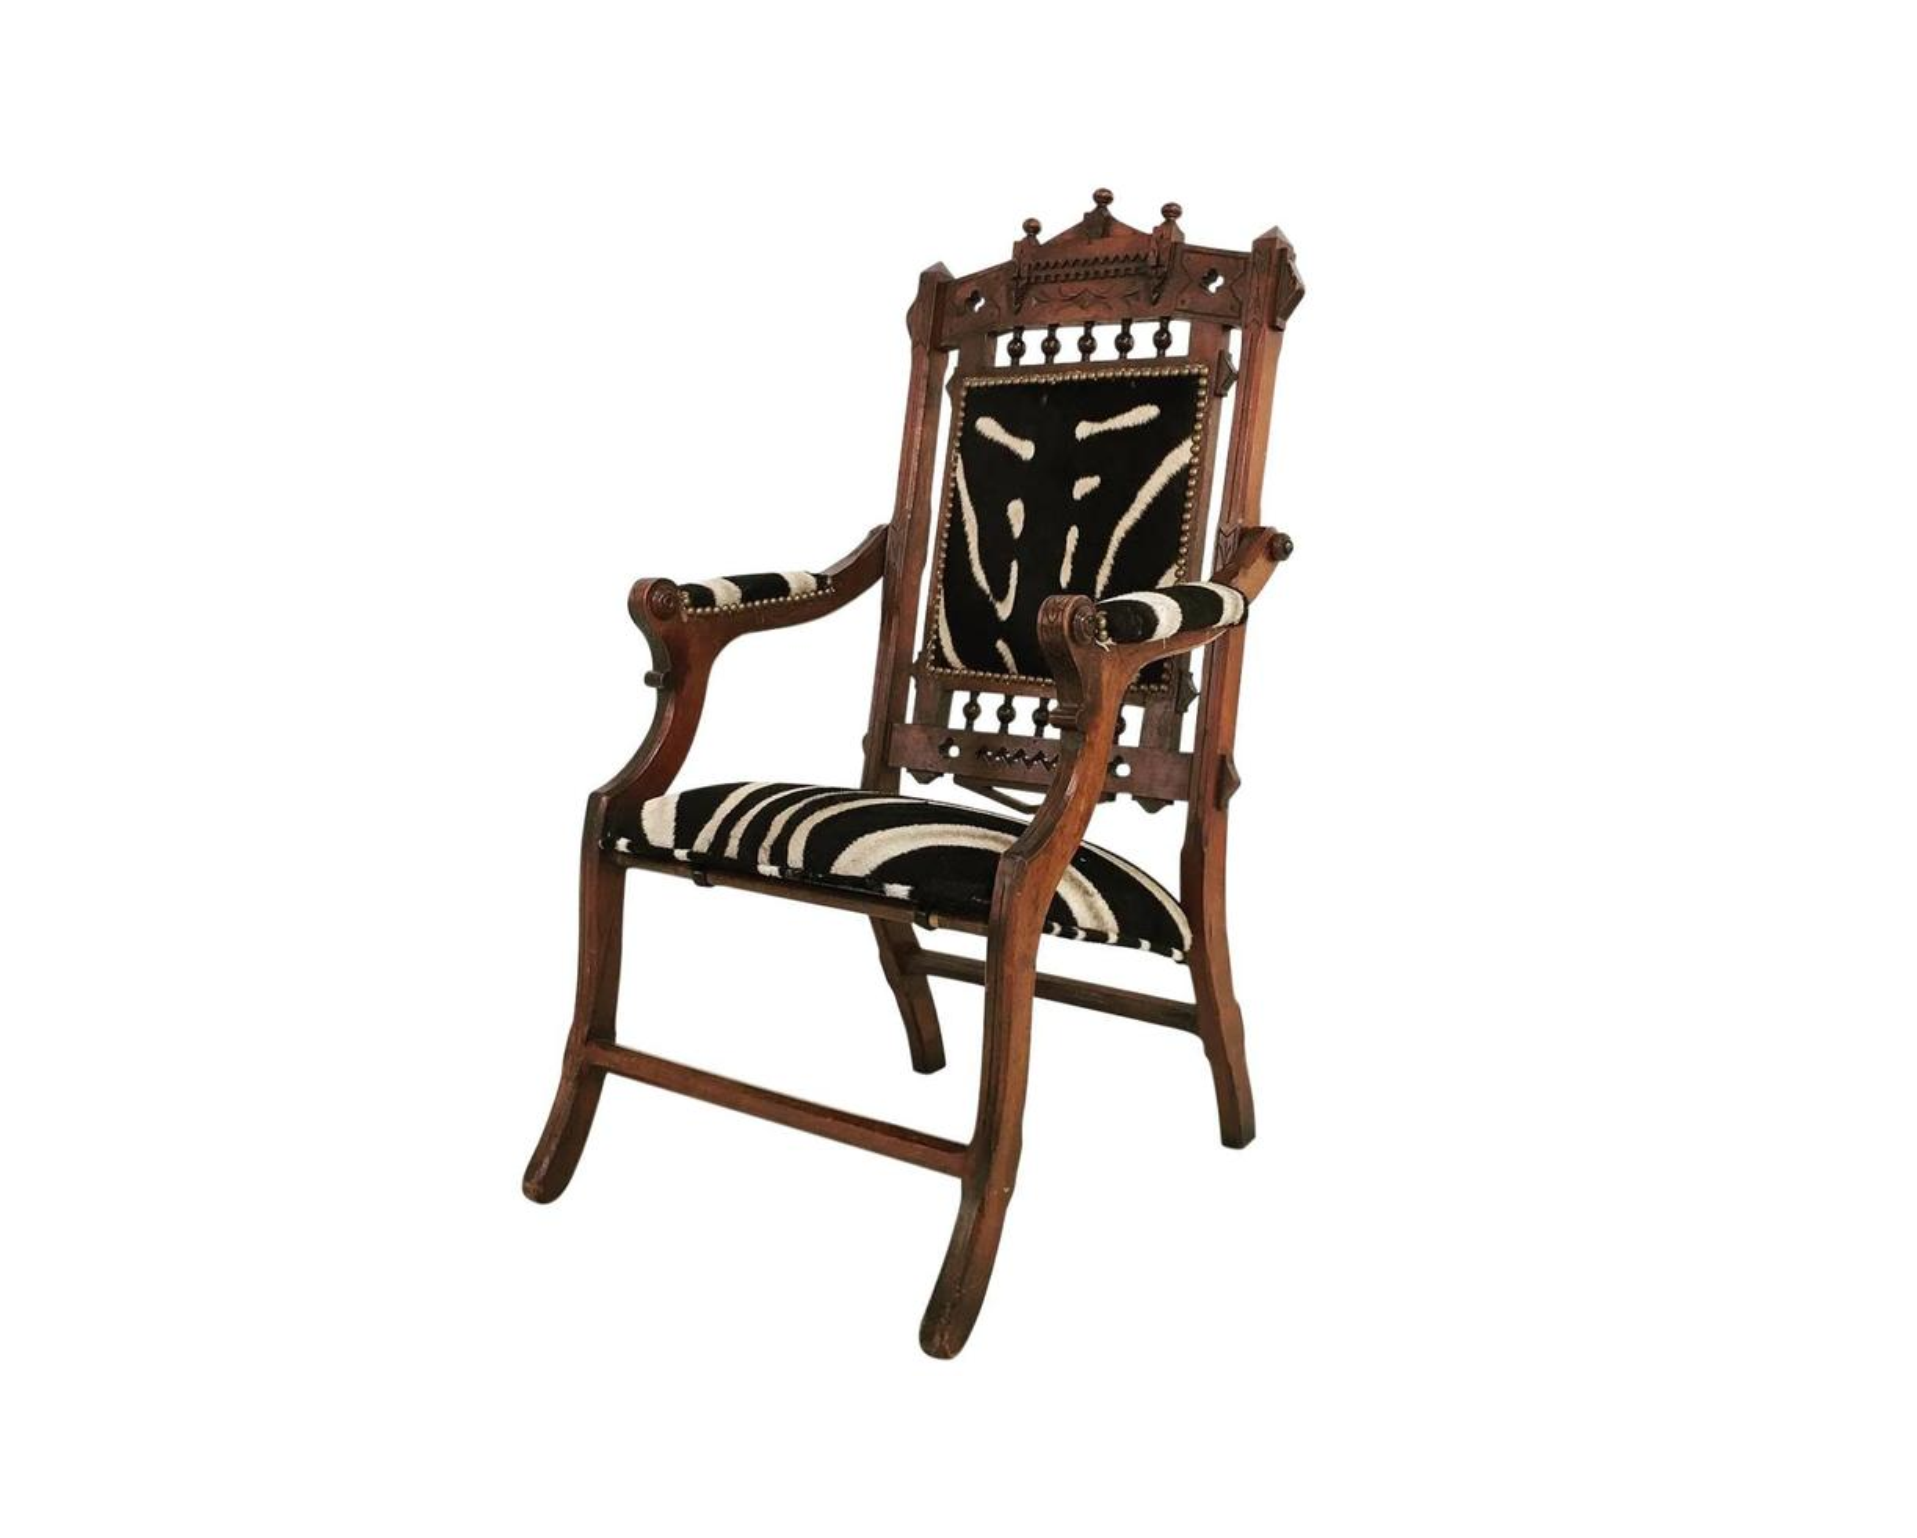 Victorian Walnut Campaign Chair in Zebra Hide - FORSYTH